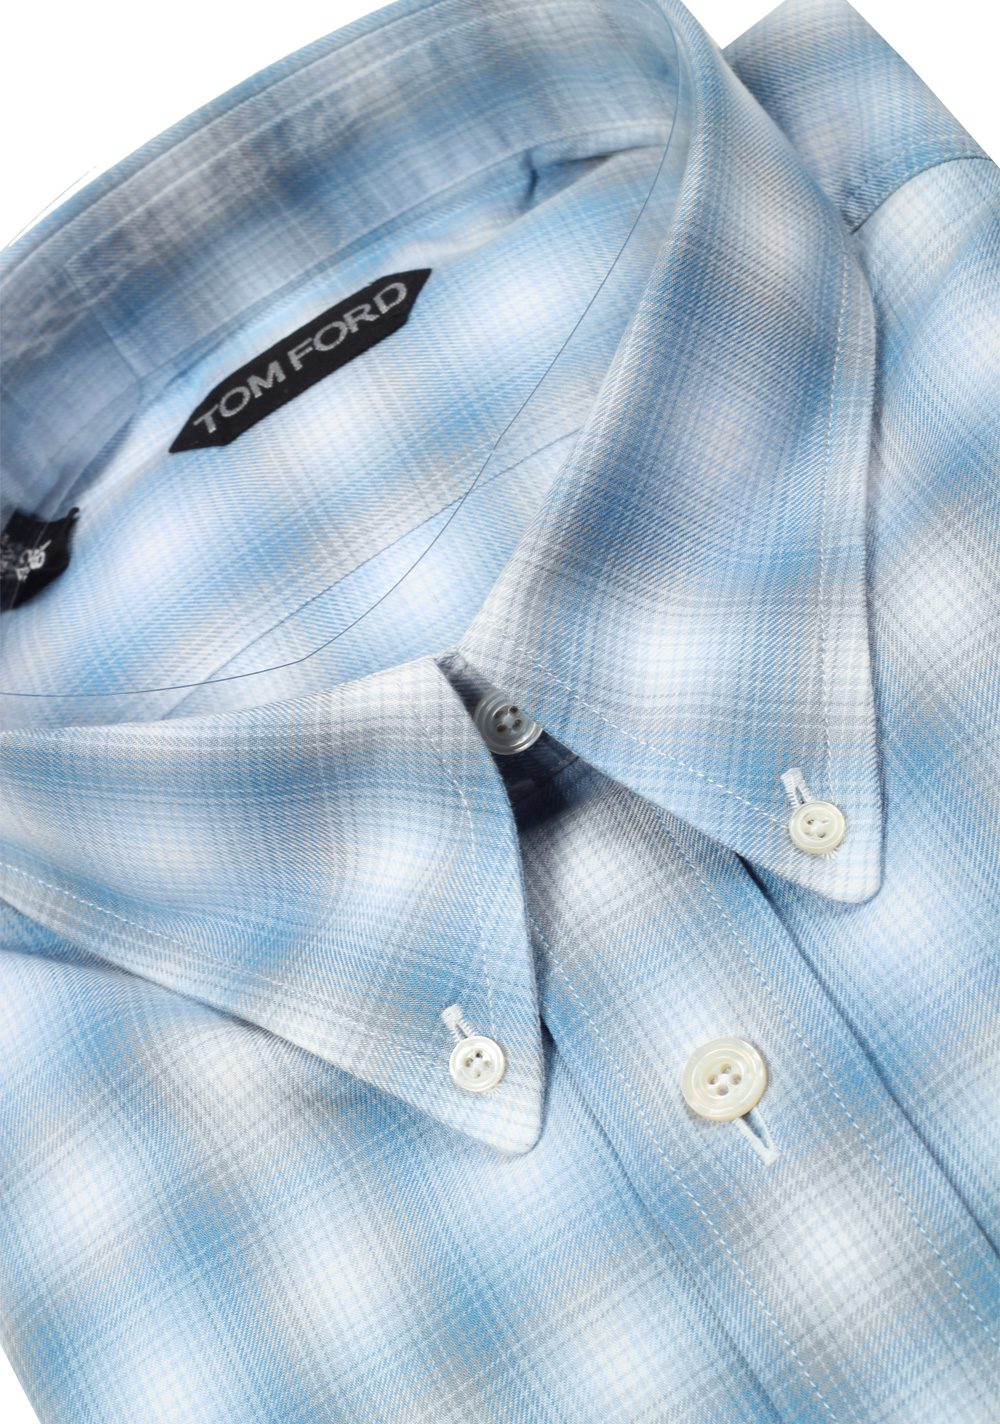 TOM FORD Checked Blue Button Down Casual Shirt Size 42 / 16,5 U.S. | Costume Limité